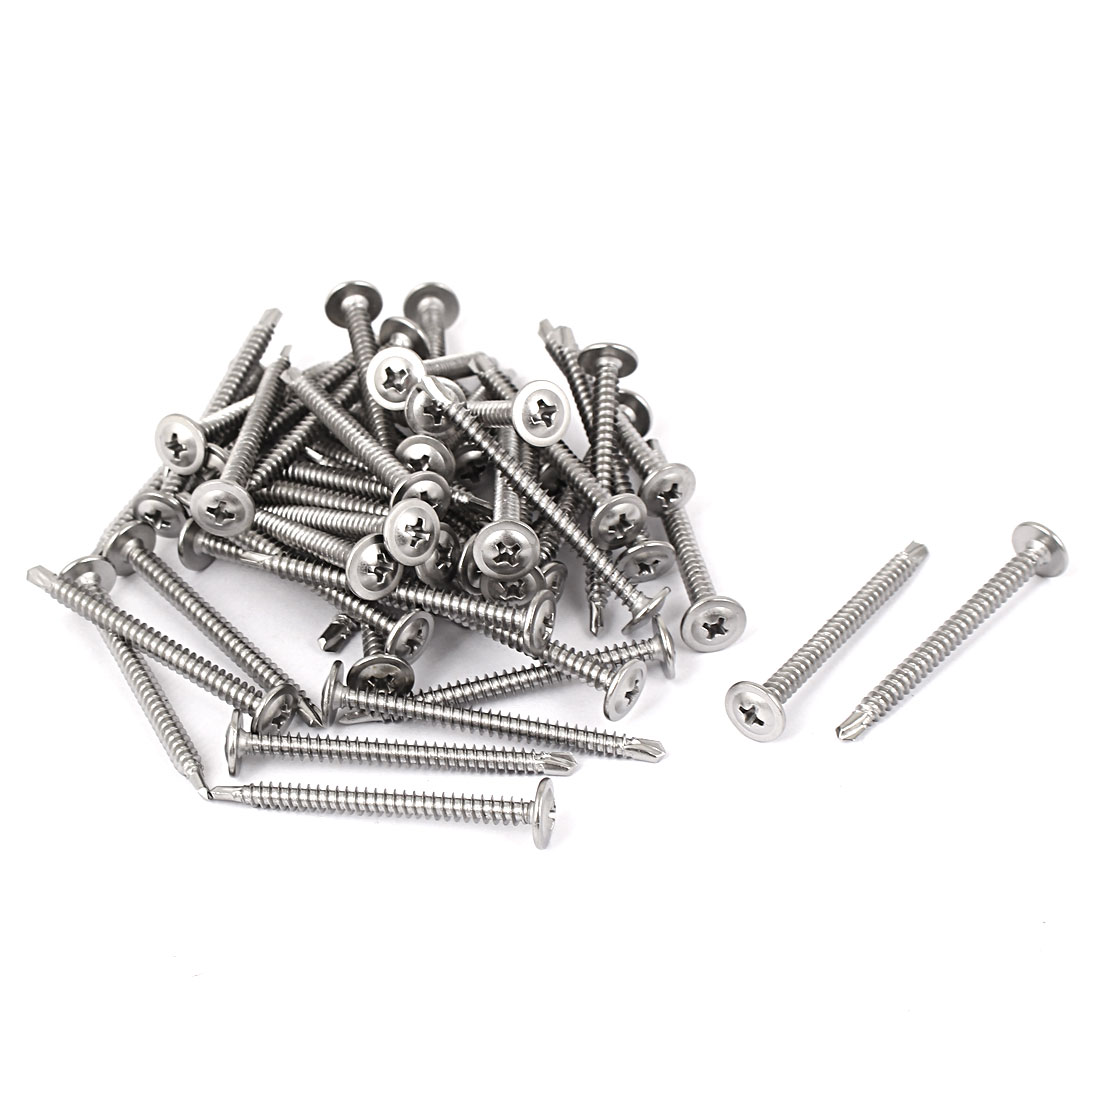 Unique Bargains M4.2x50mm Stainless Steel Round Phillips Head Self Drilling Screws 50pcs - image 1 of 1